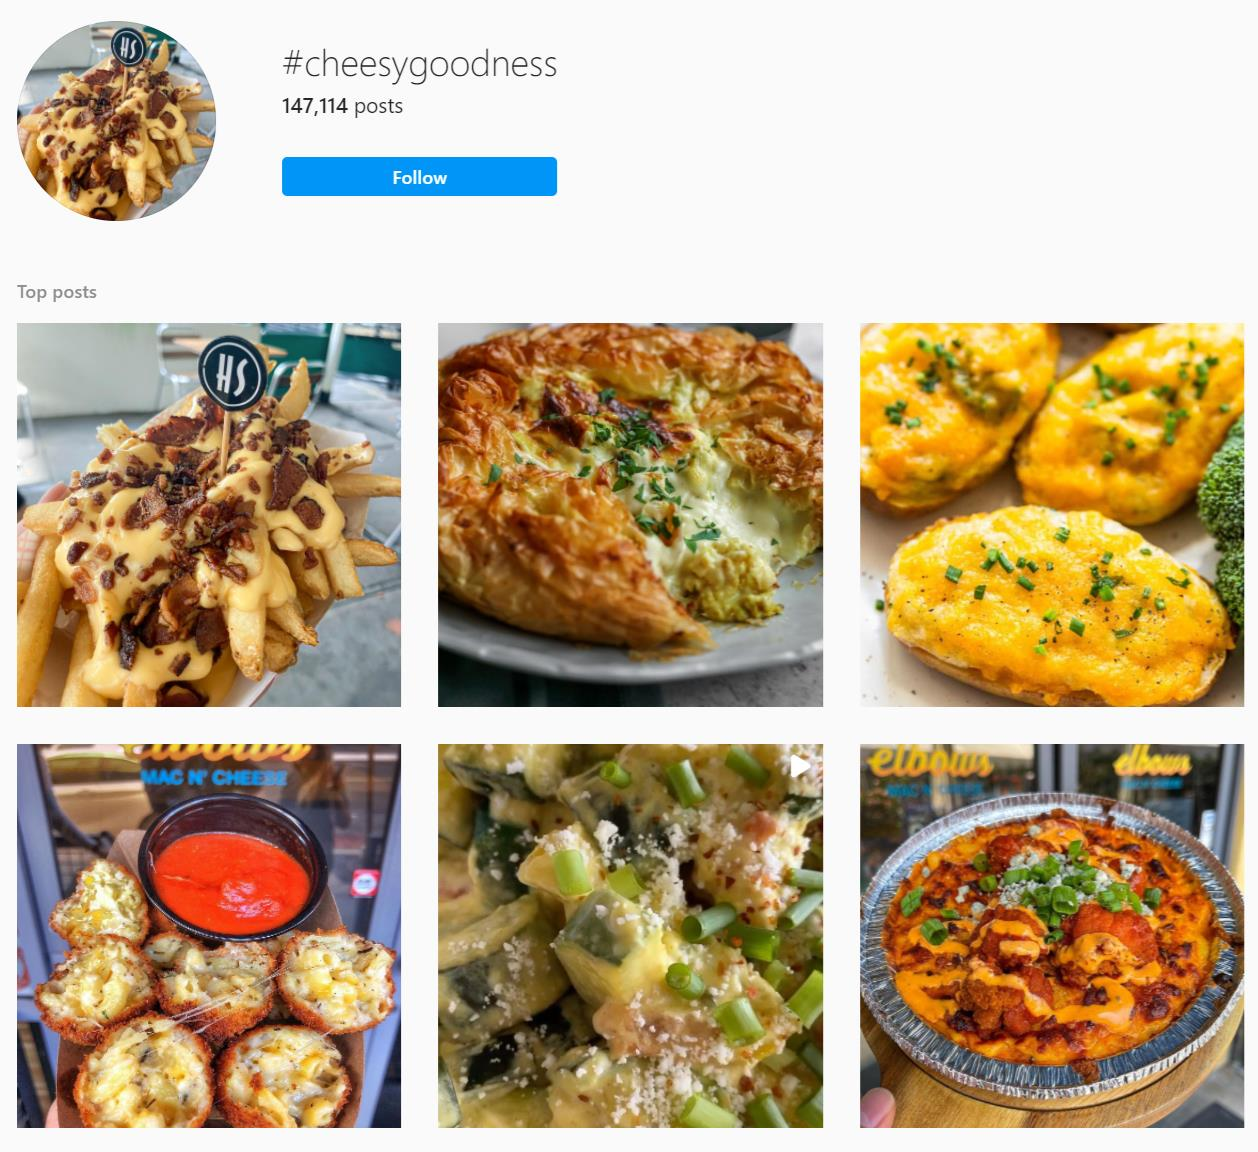 cheesy goodness Instagram hashtag page